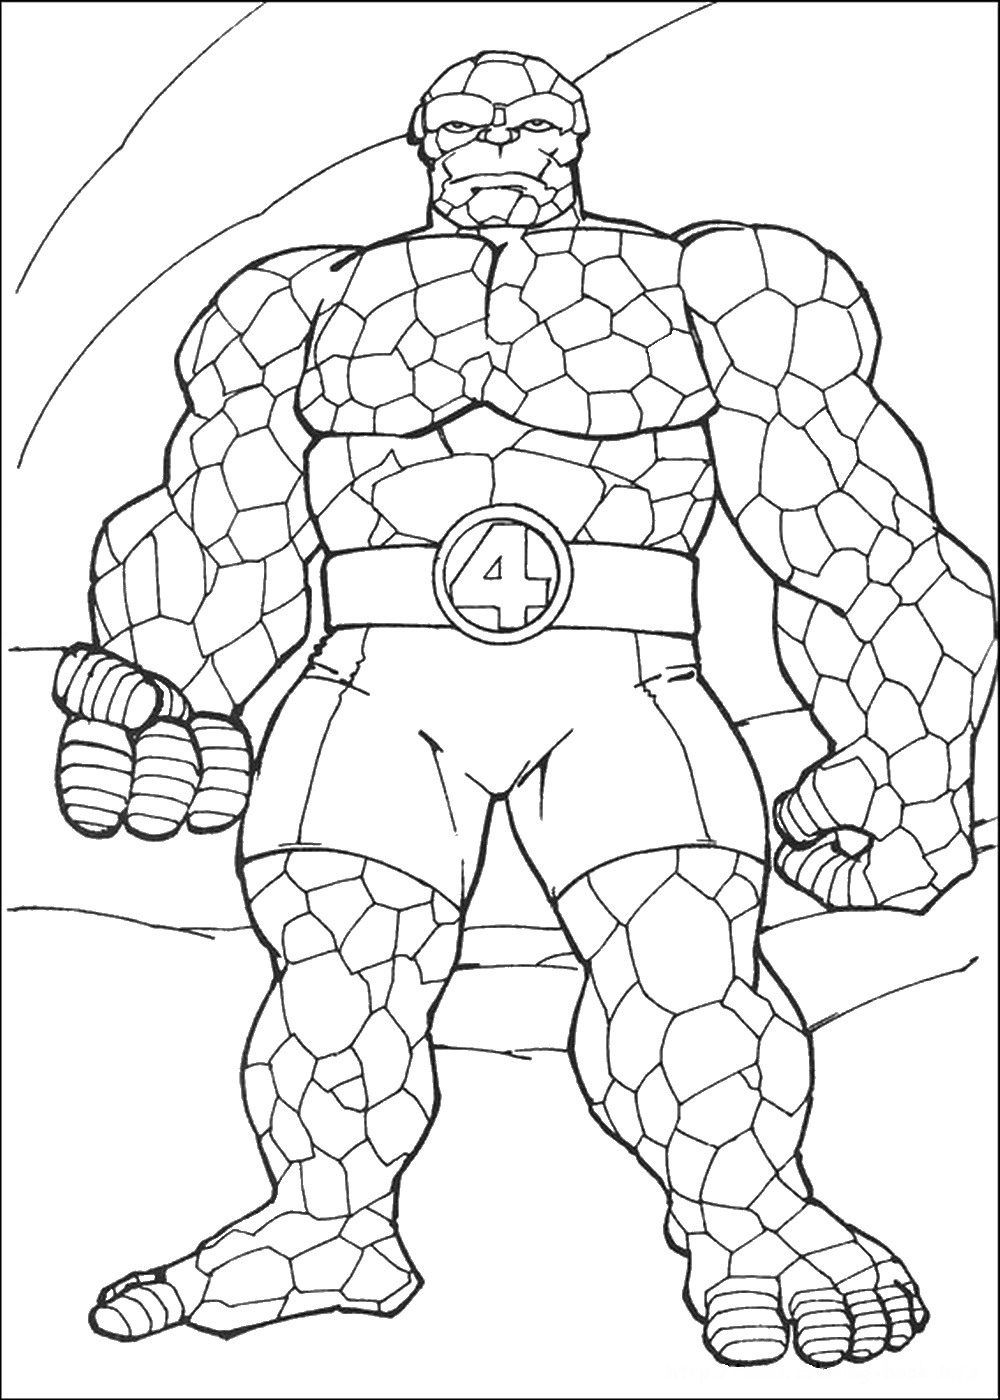 Fantastic four coloring pages to